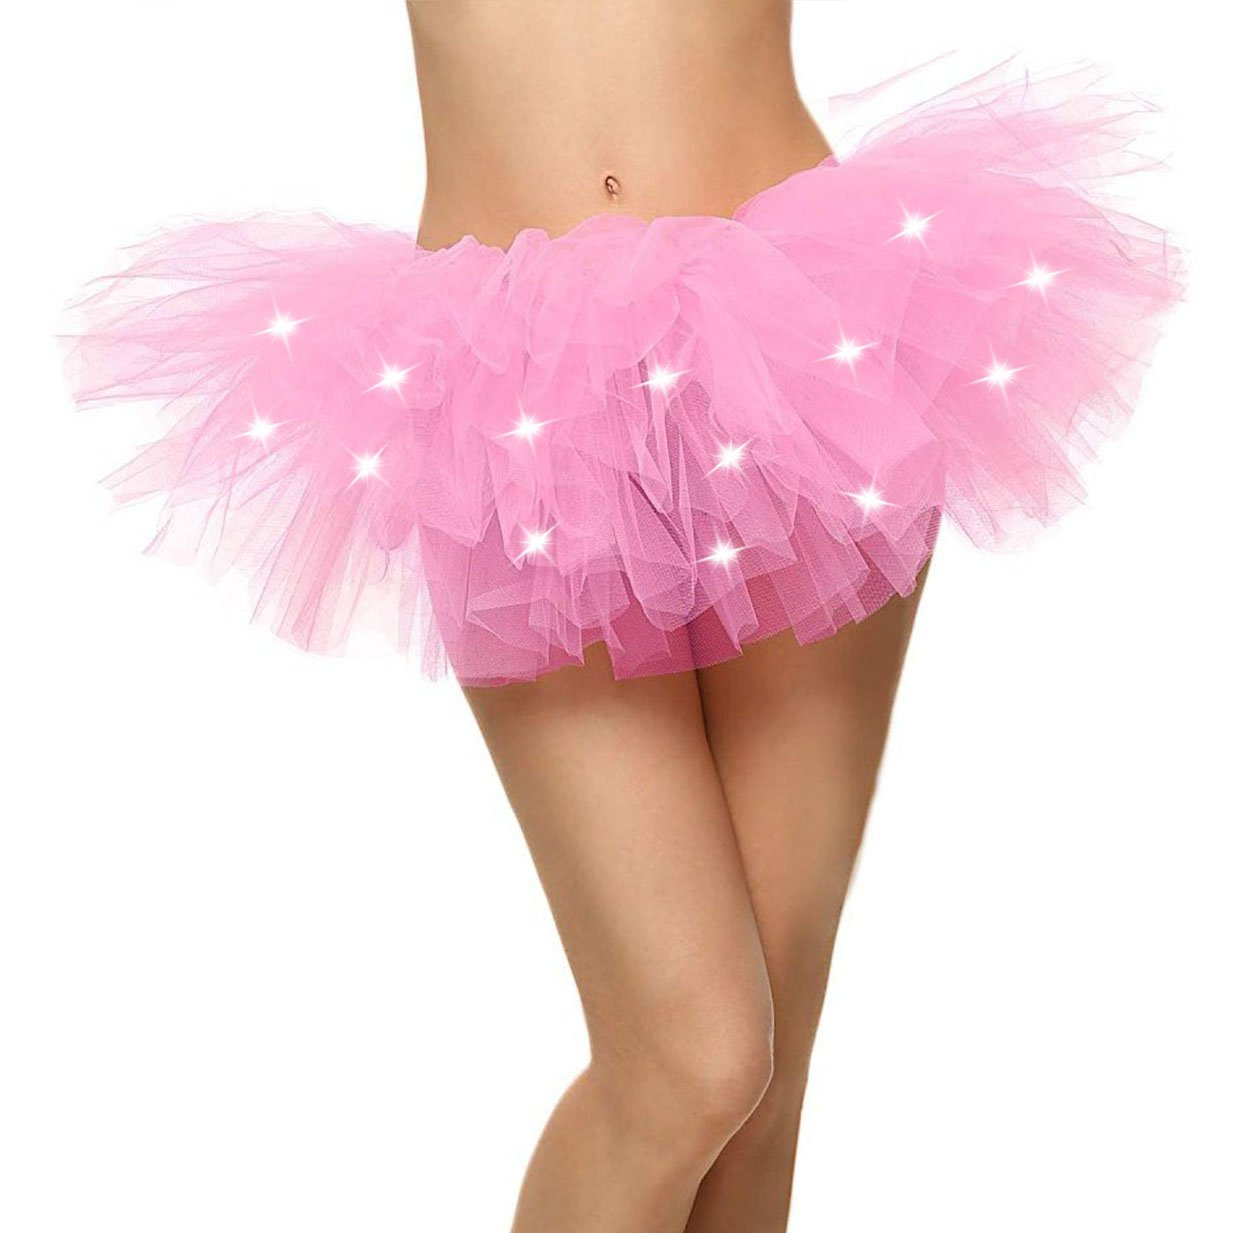 Pink Tutu Women's LED Light Up Neon Tulle Tutu Skirt for Nightclub, Light pink